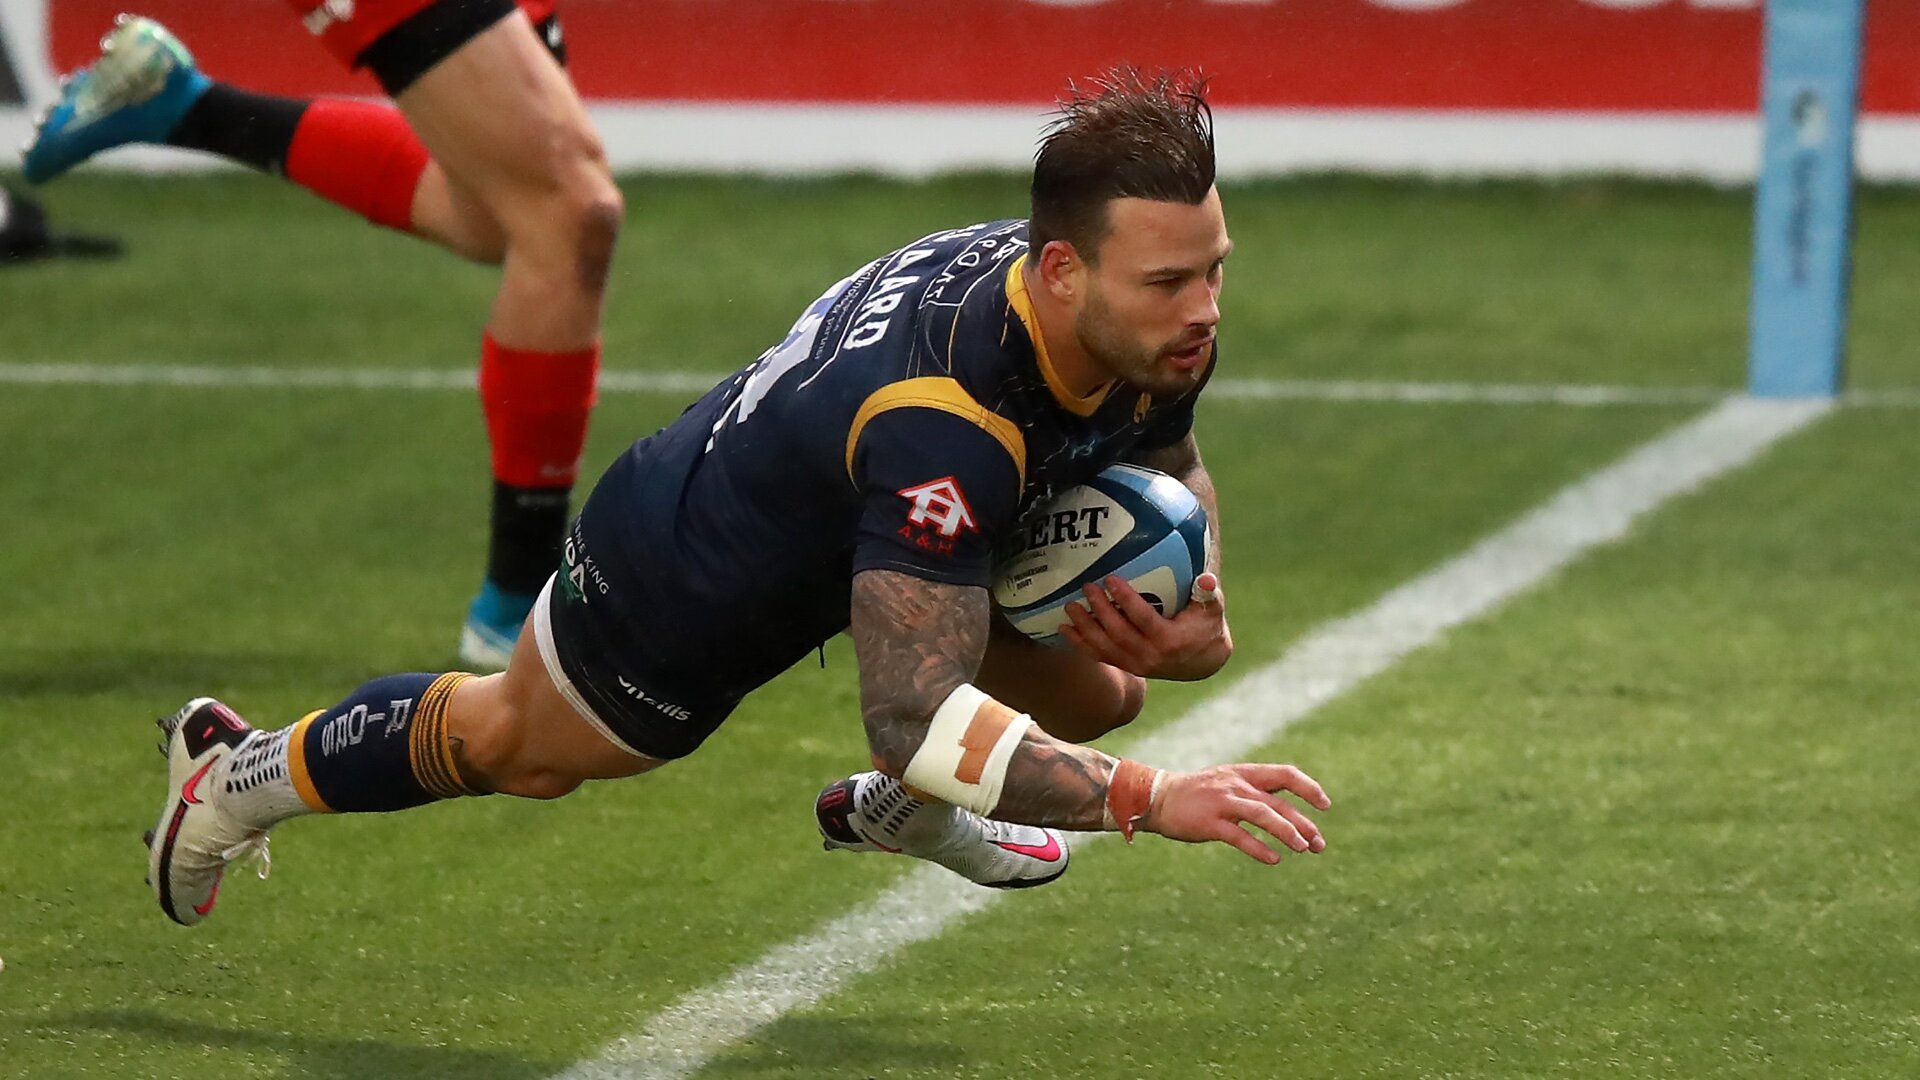 European hangover continues for Saracens as Worcester win comfortably